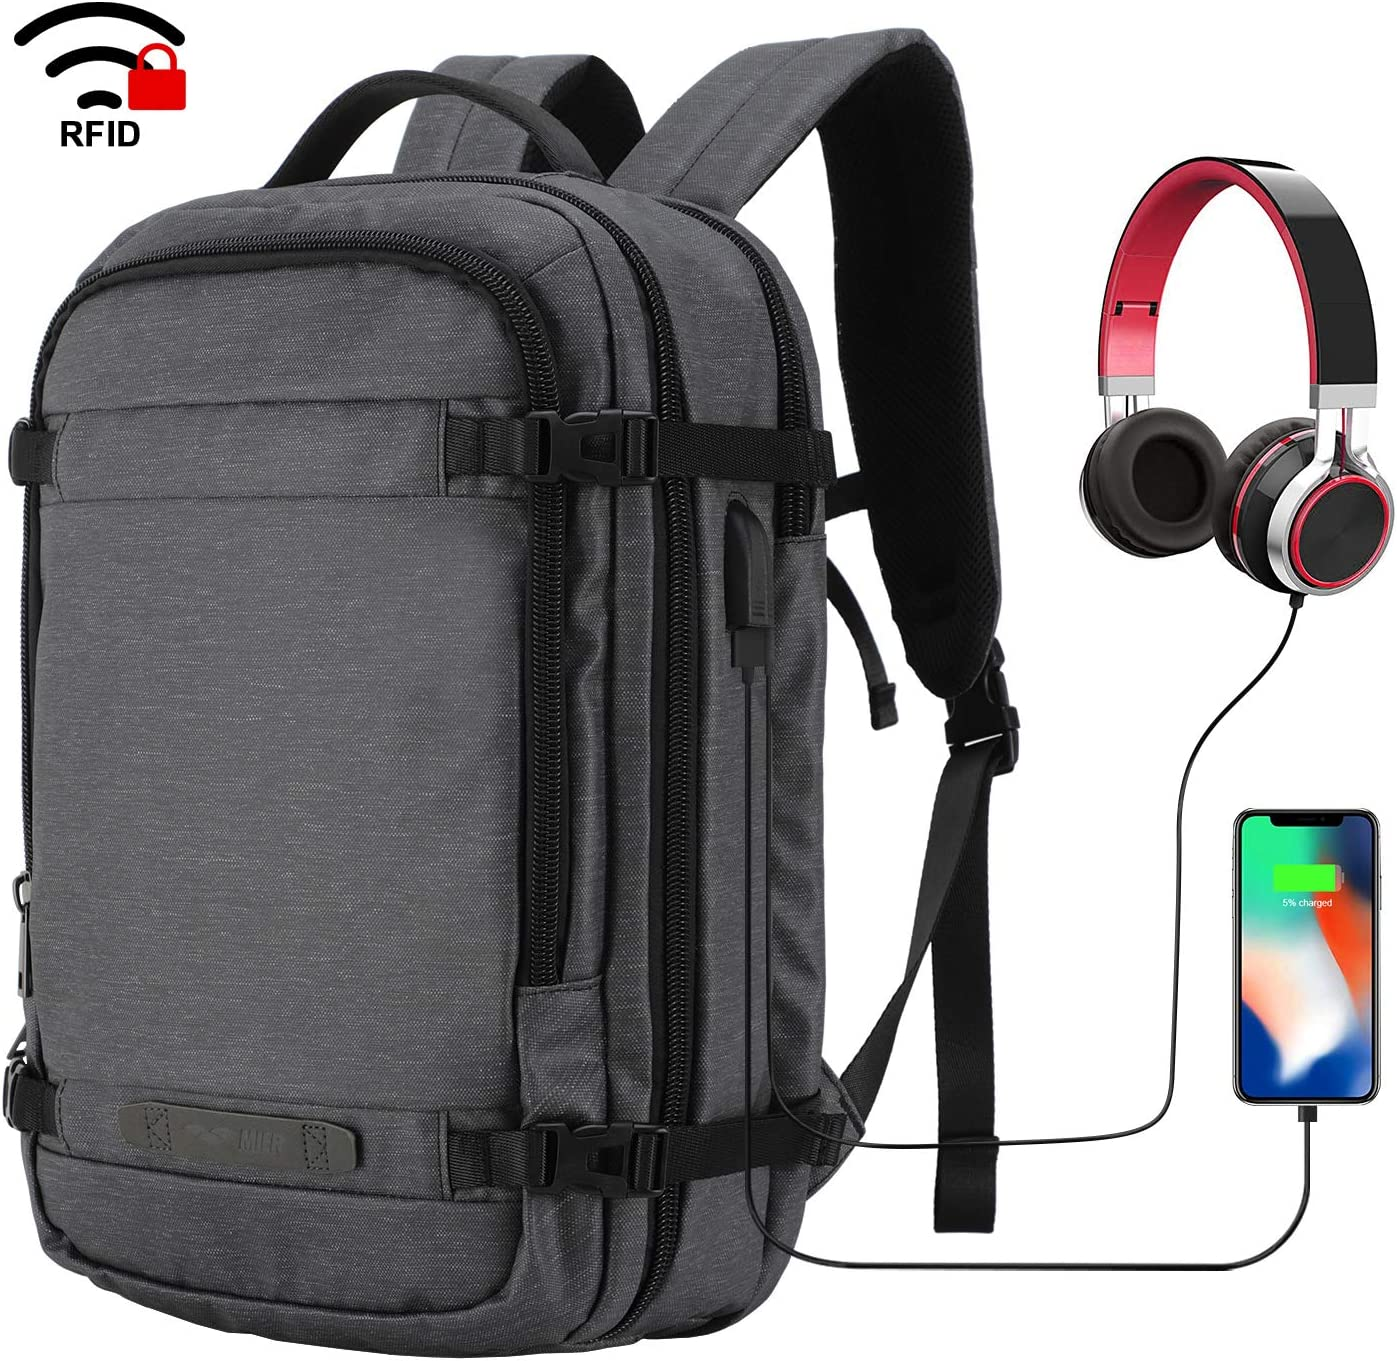 MIER Travel Backpack 17 Inches Laptop Carry On Daypack with USB Charging Port, Dark Grey